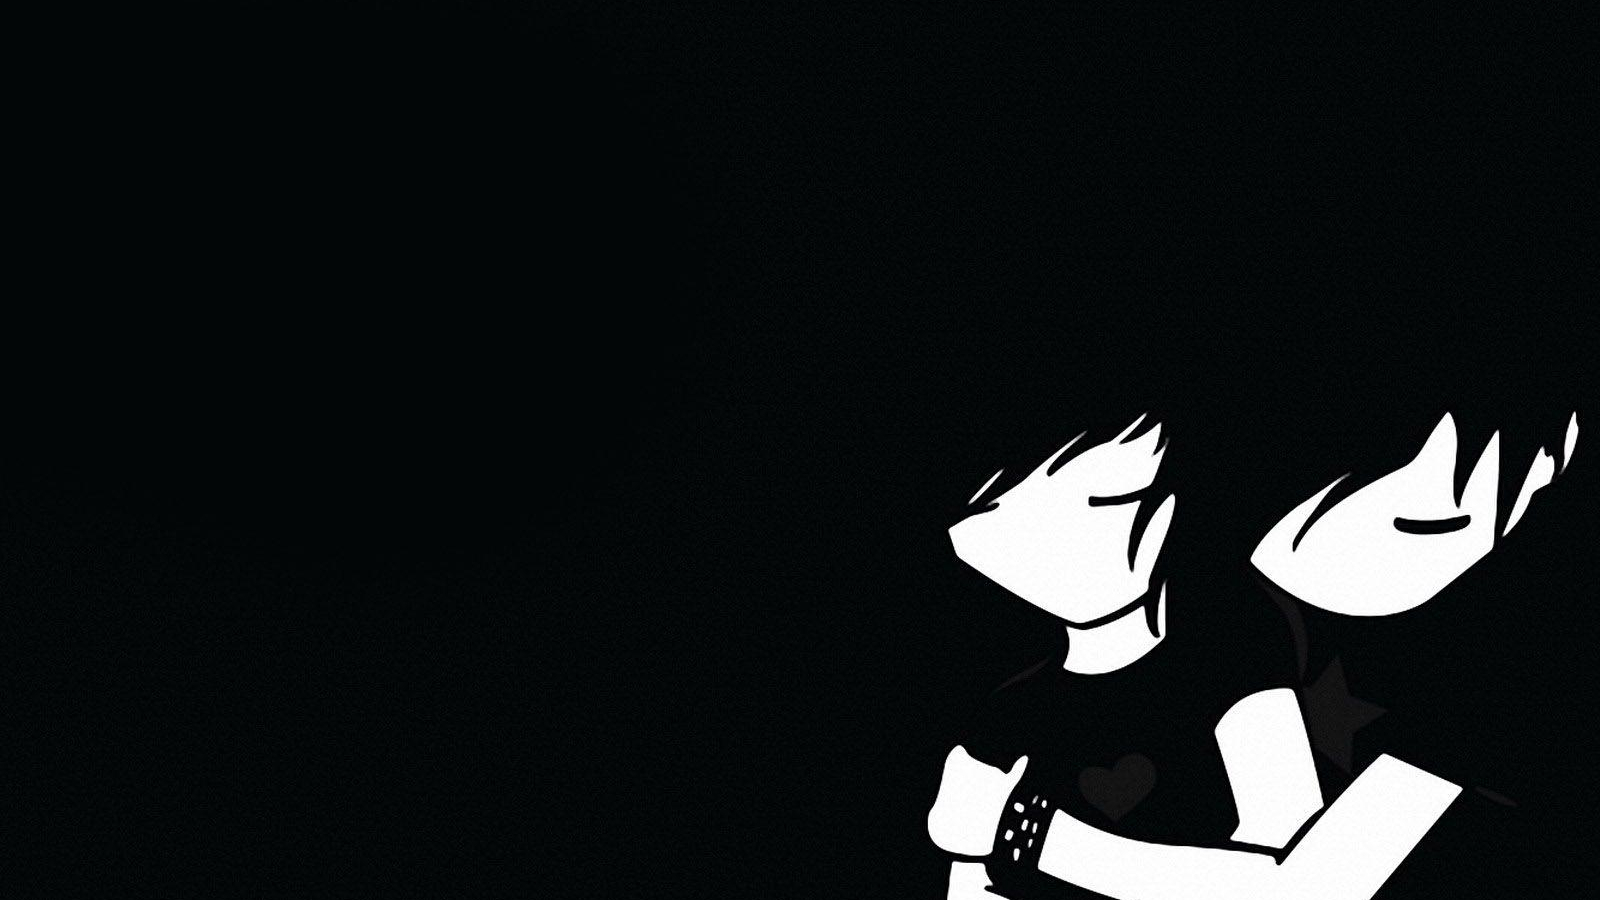 Free Download Emo Anime Wallpapers 1600x1200 For Your Desktop